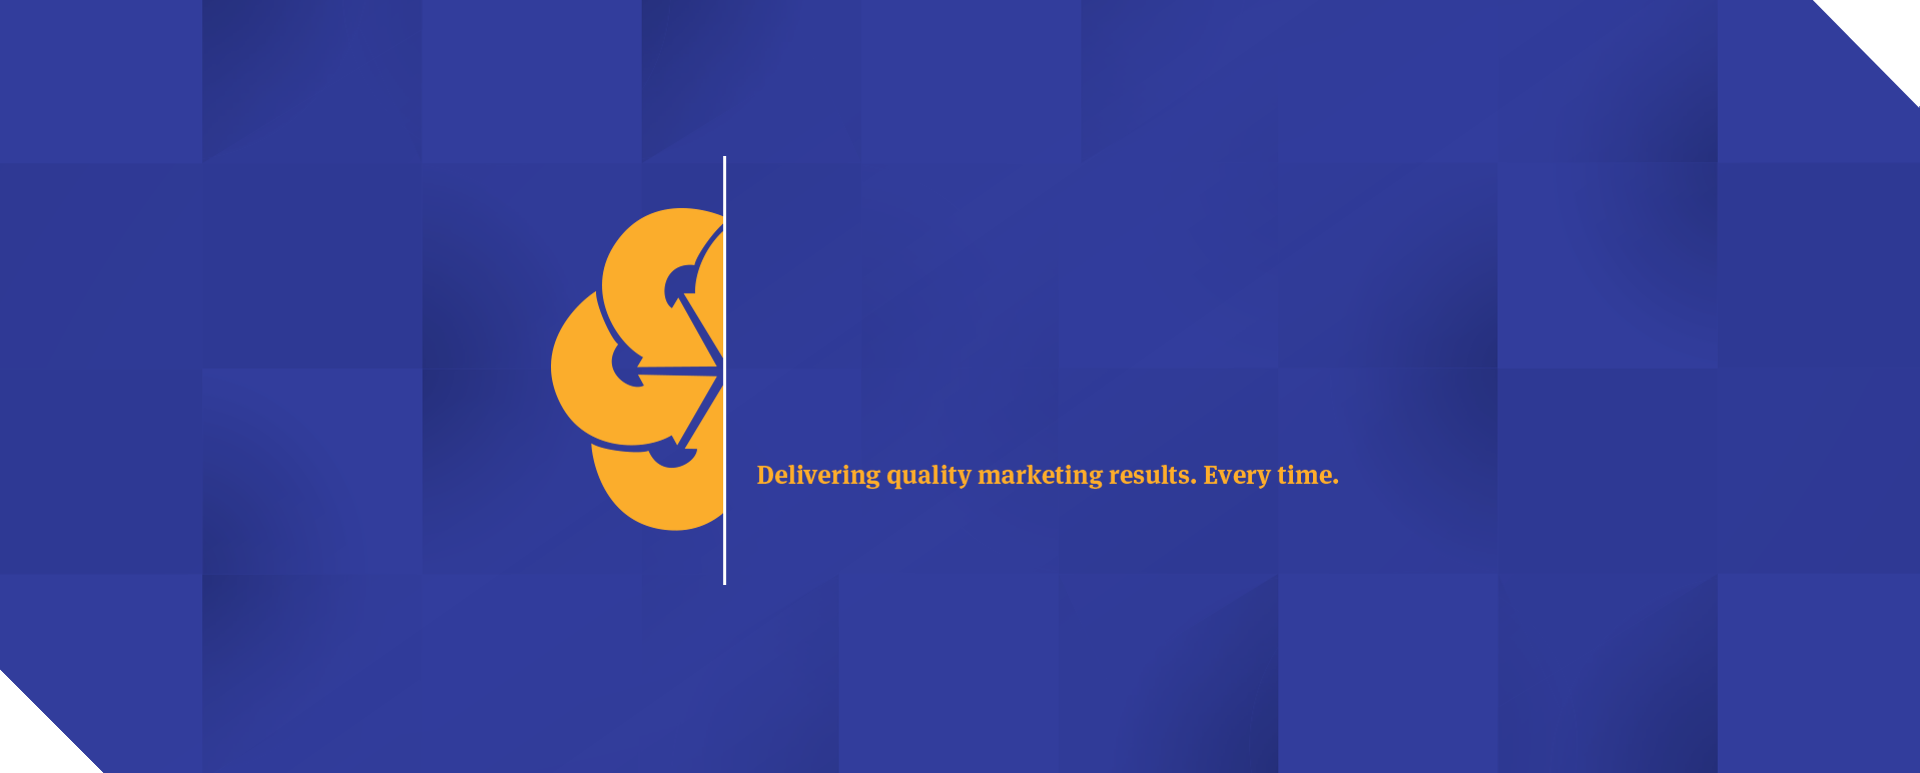 Delivering quality marketing results.  Every time.